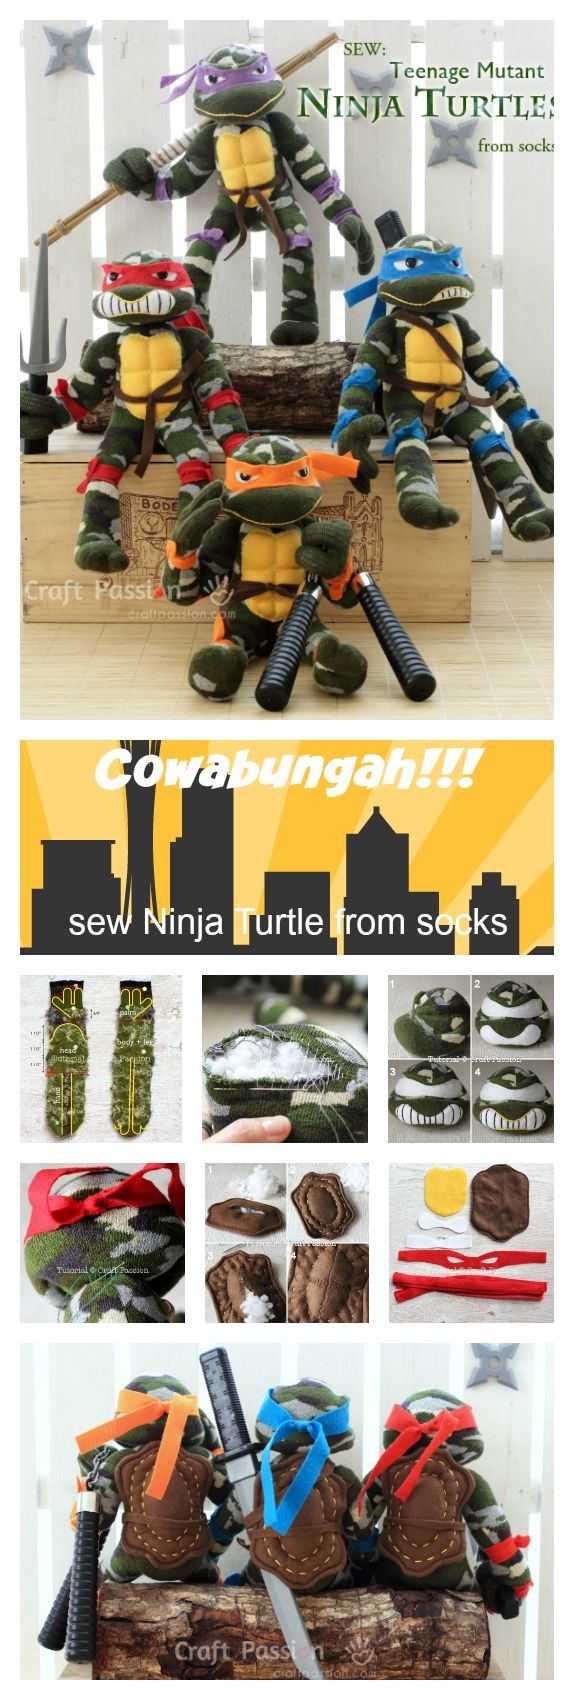 Learn how to sew Sock Ninja Turtle by using a pair of Military Camouflage print socks or dark green socks. Free templates are included for download & print.